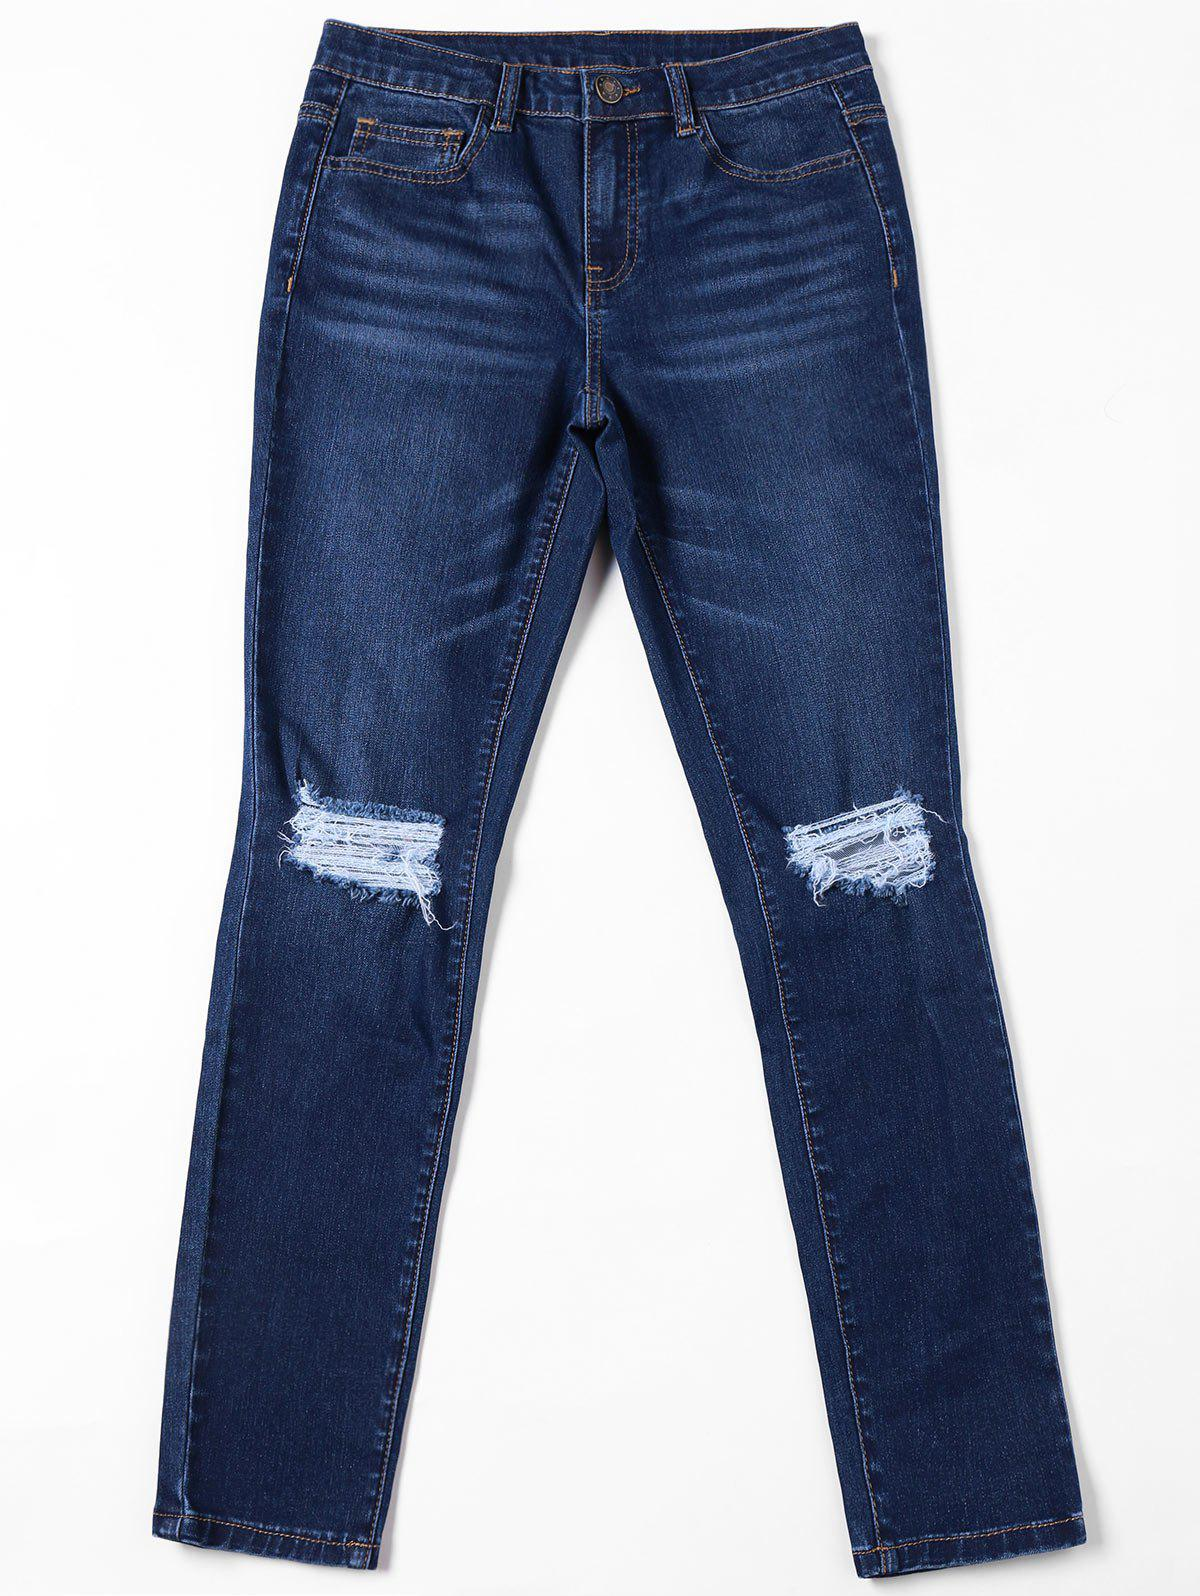 Cat's Whisker Ripped Jeans with Pockets - DENIM BLUE XL